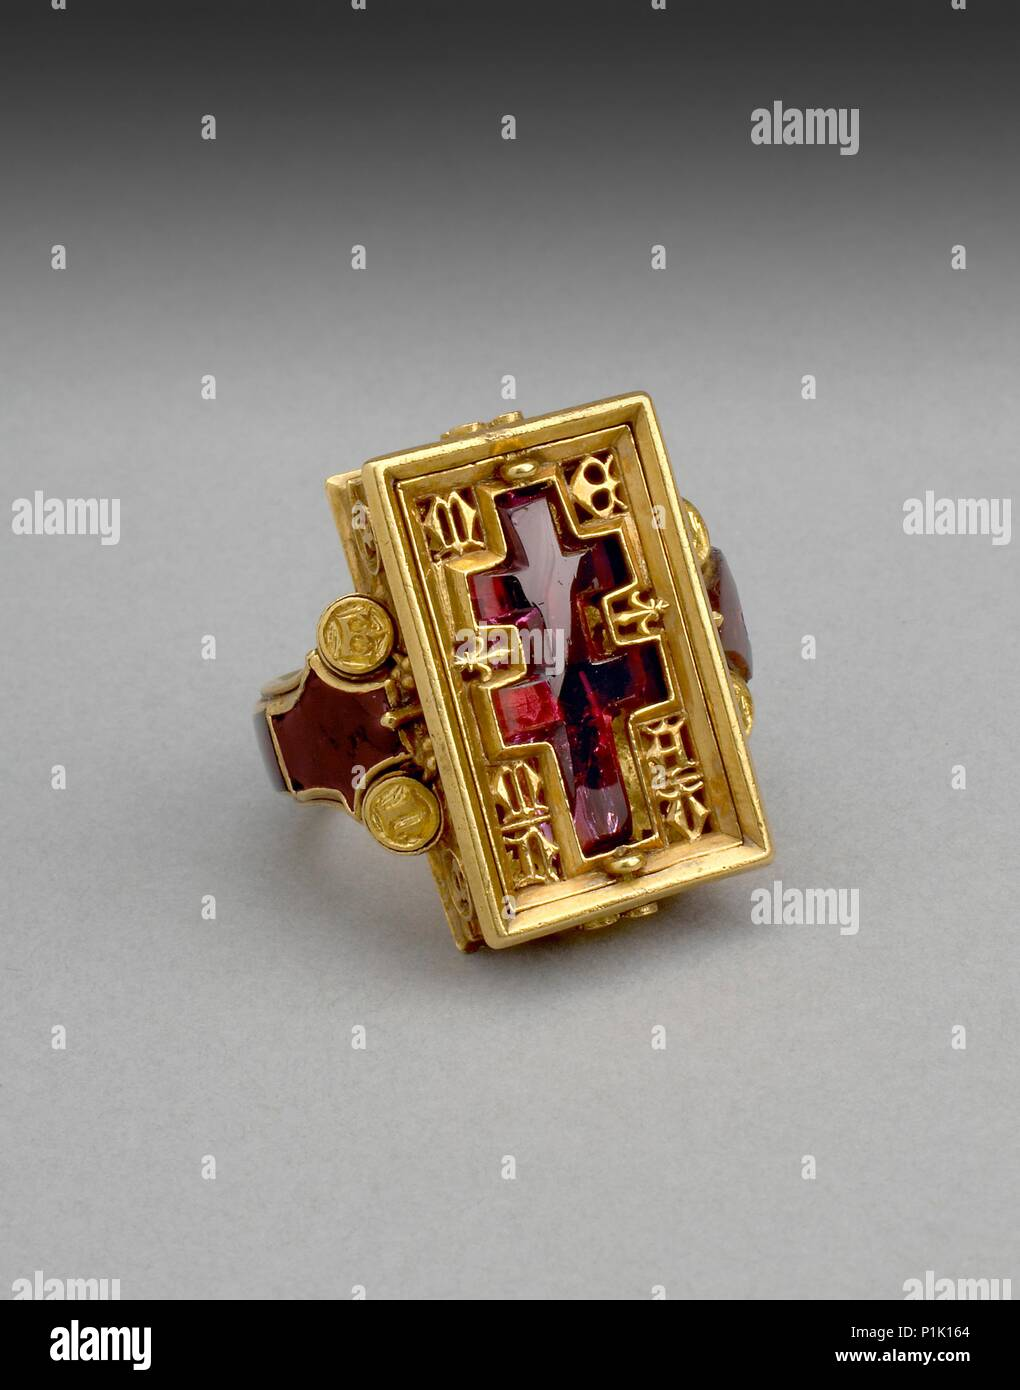 Reliquary ring (The Thame Ring), 14th century. Double-armed cross forms the central motif and the ring cover can be removed to reveal a cavity that ma - Stock Image